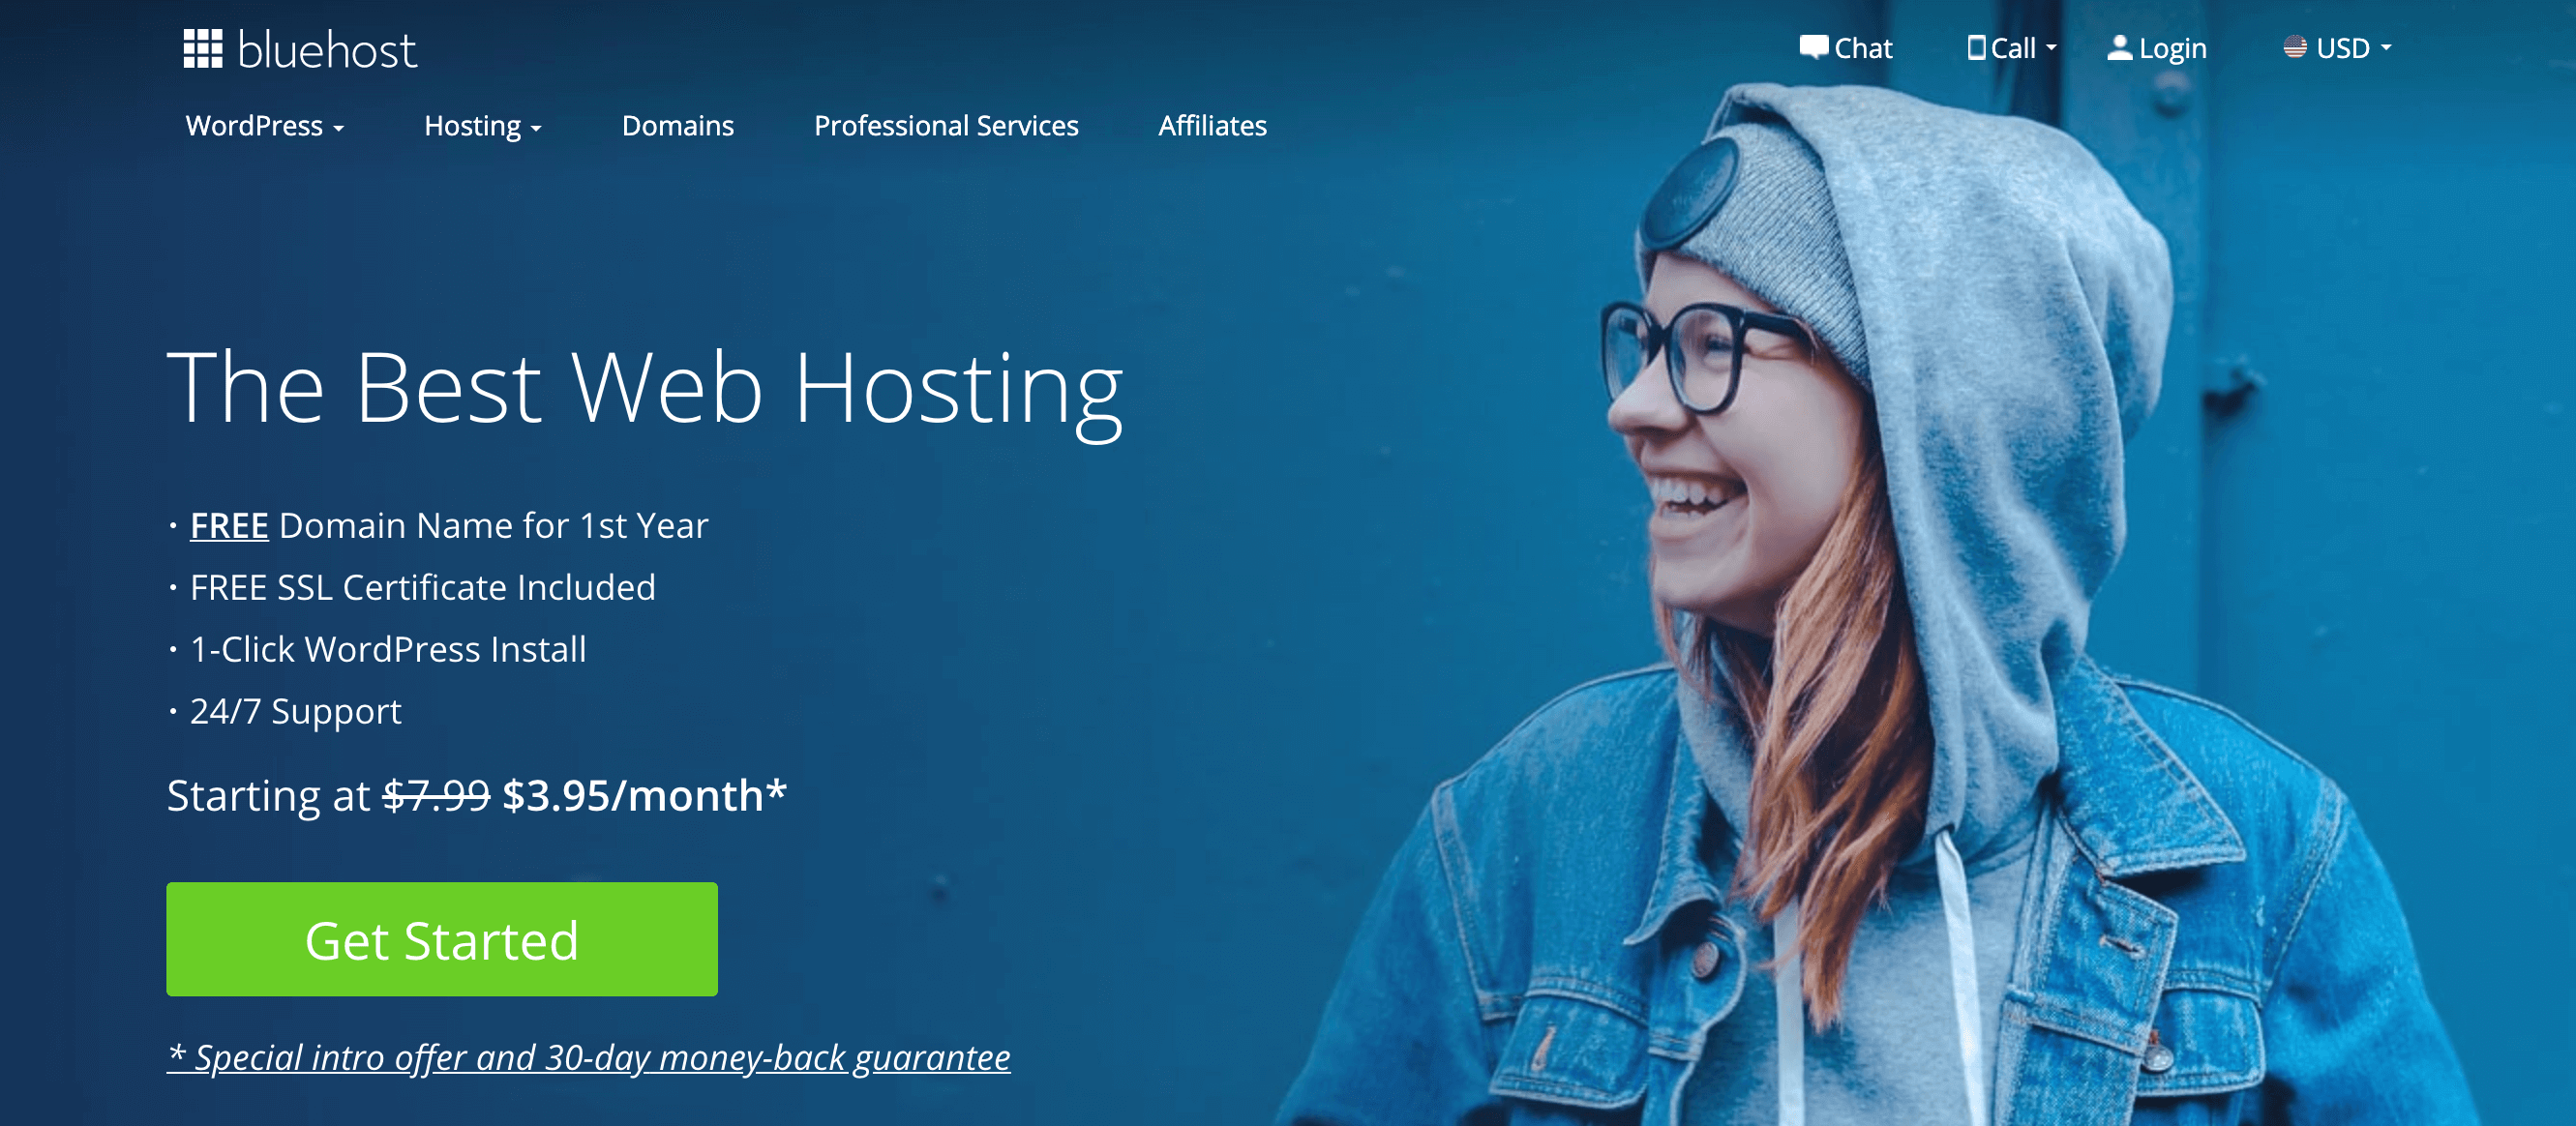 Bluehost Review Banner